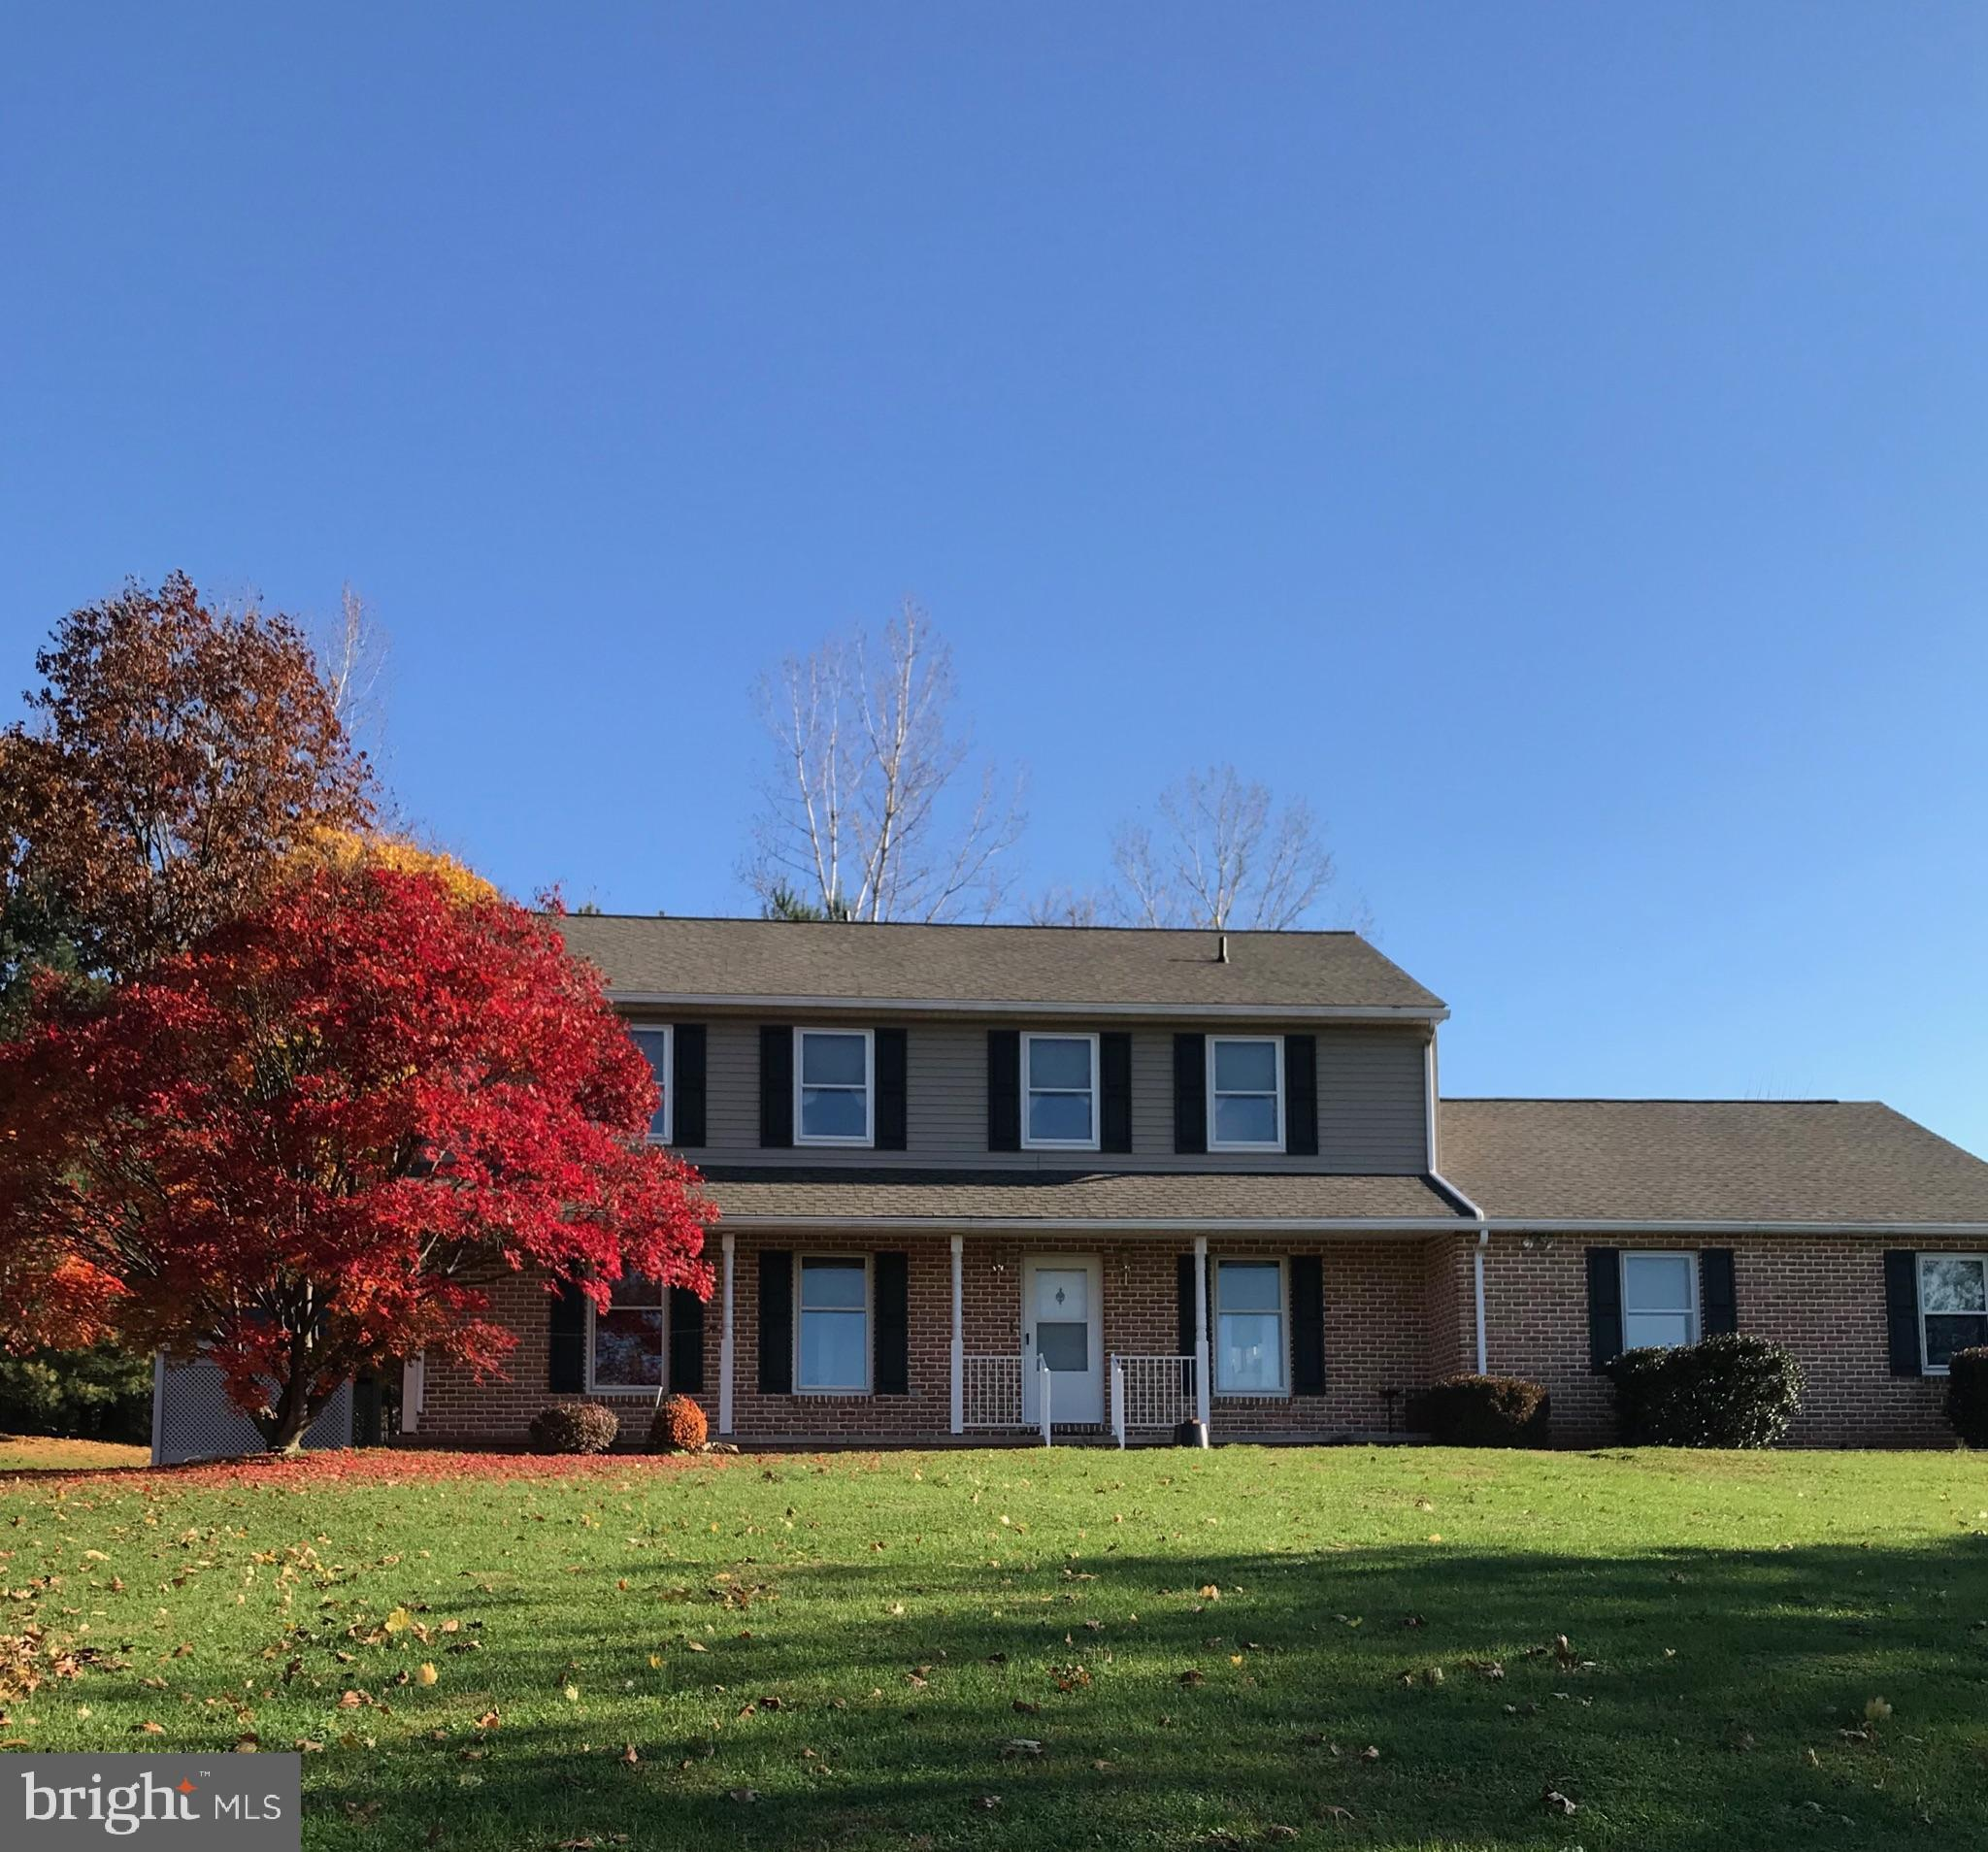 1435 COUNTY LINE ROAD, YORK SPRINGS, PA 17372